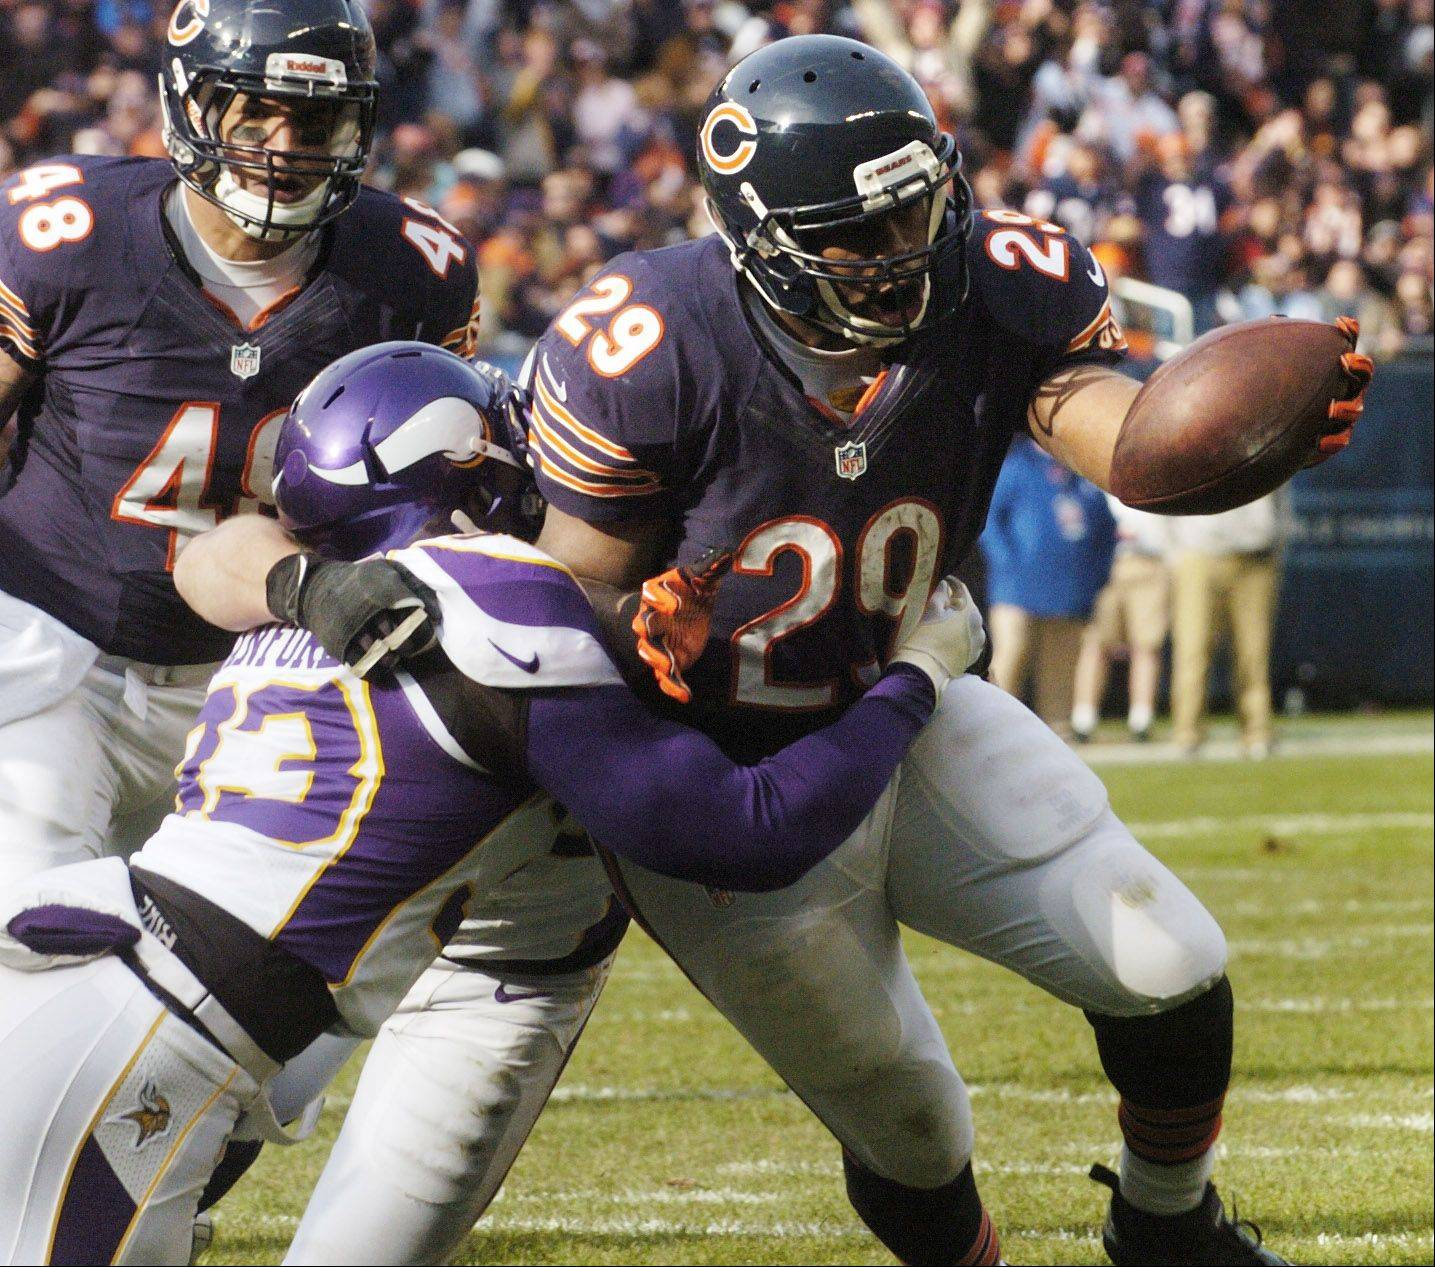 Michael Bush had 21 carries for 60 yards and 2 TDs against Minnesota on Sunday at Soldier Field.